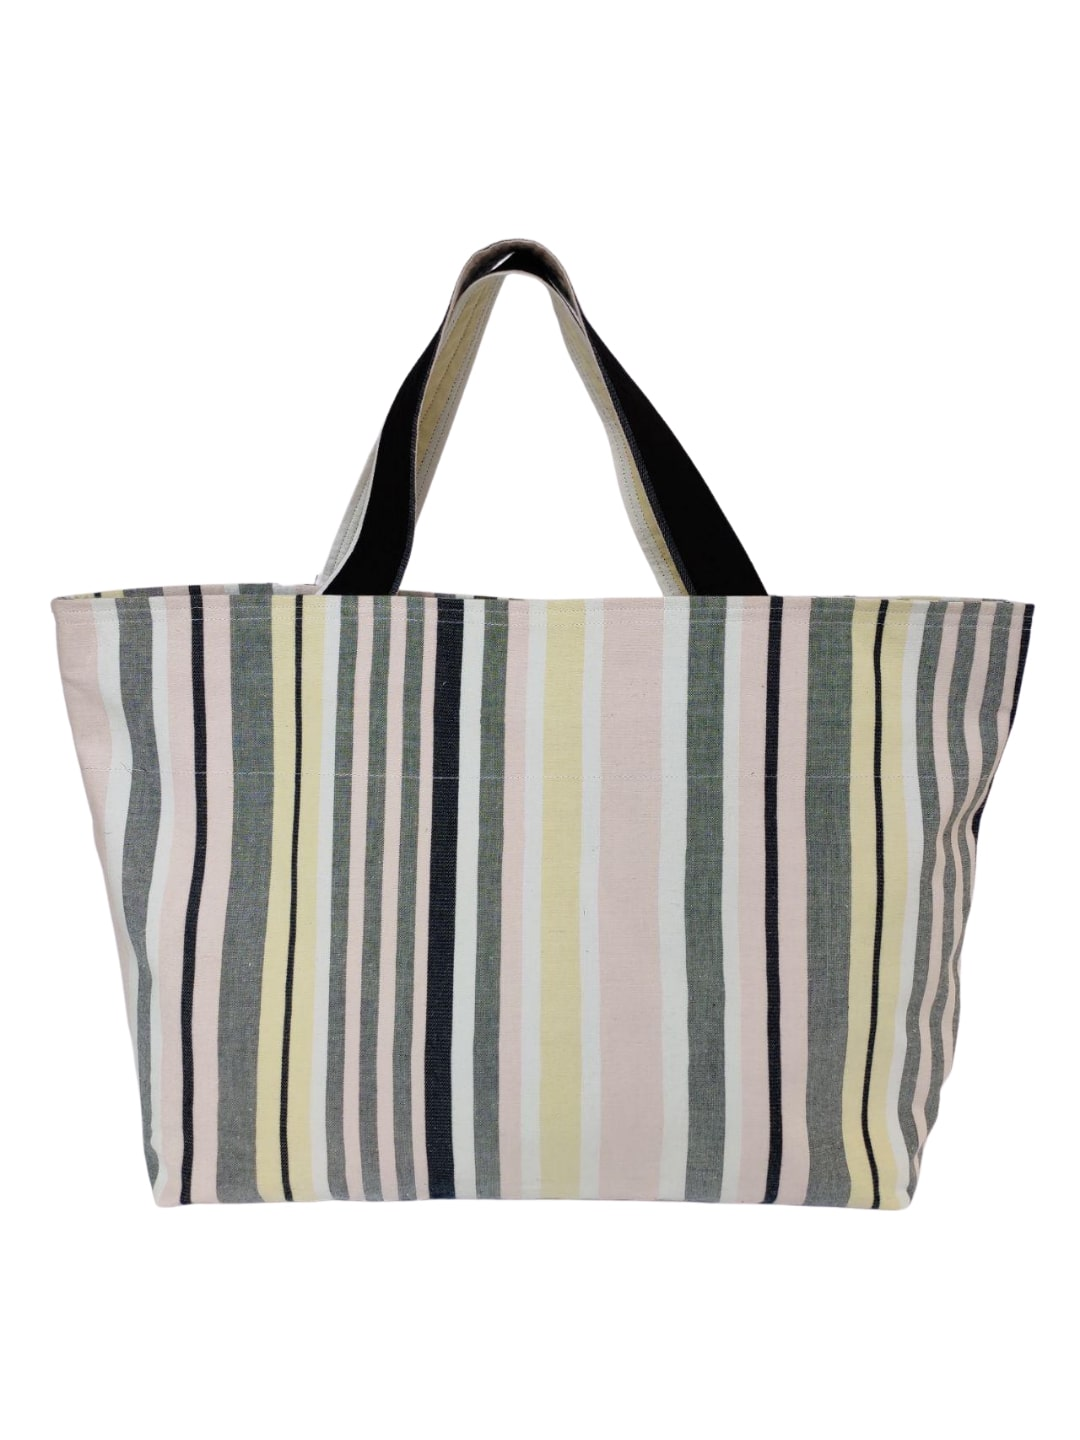 Multi Striped Printed Tote Bag